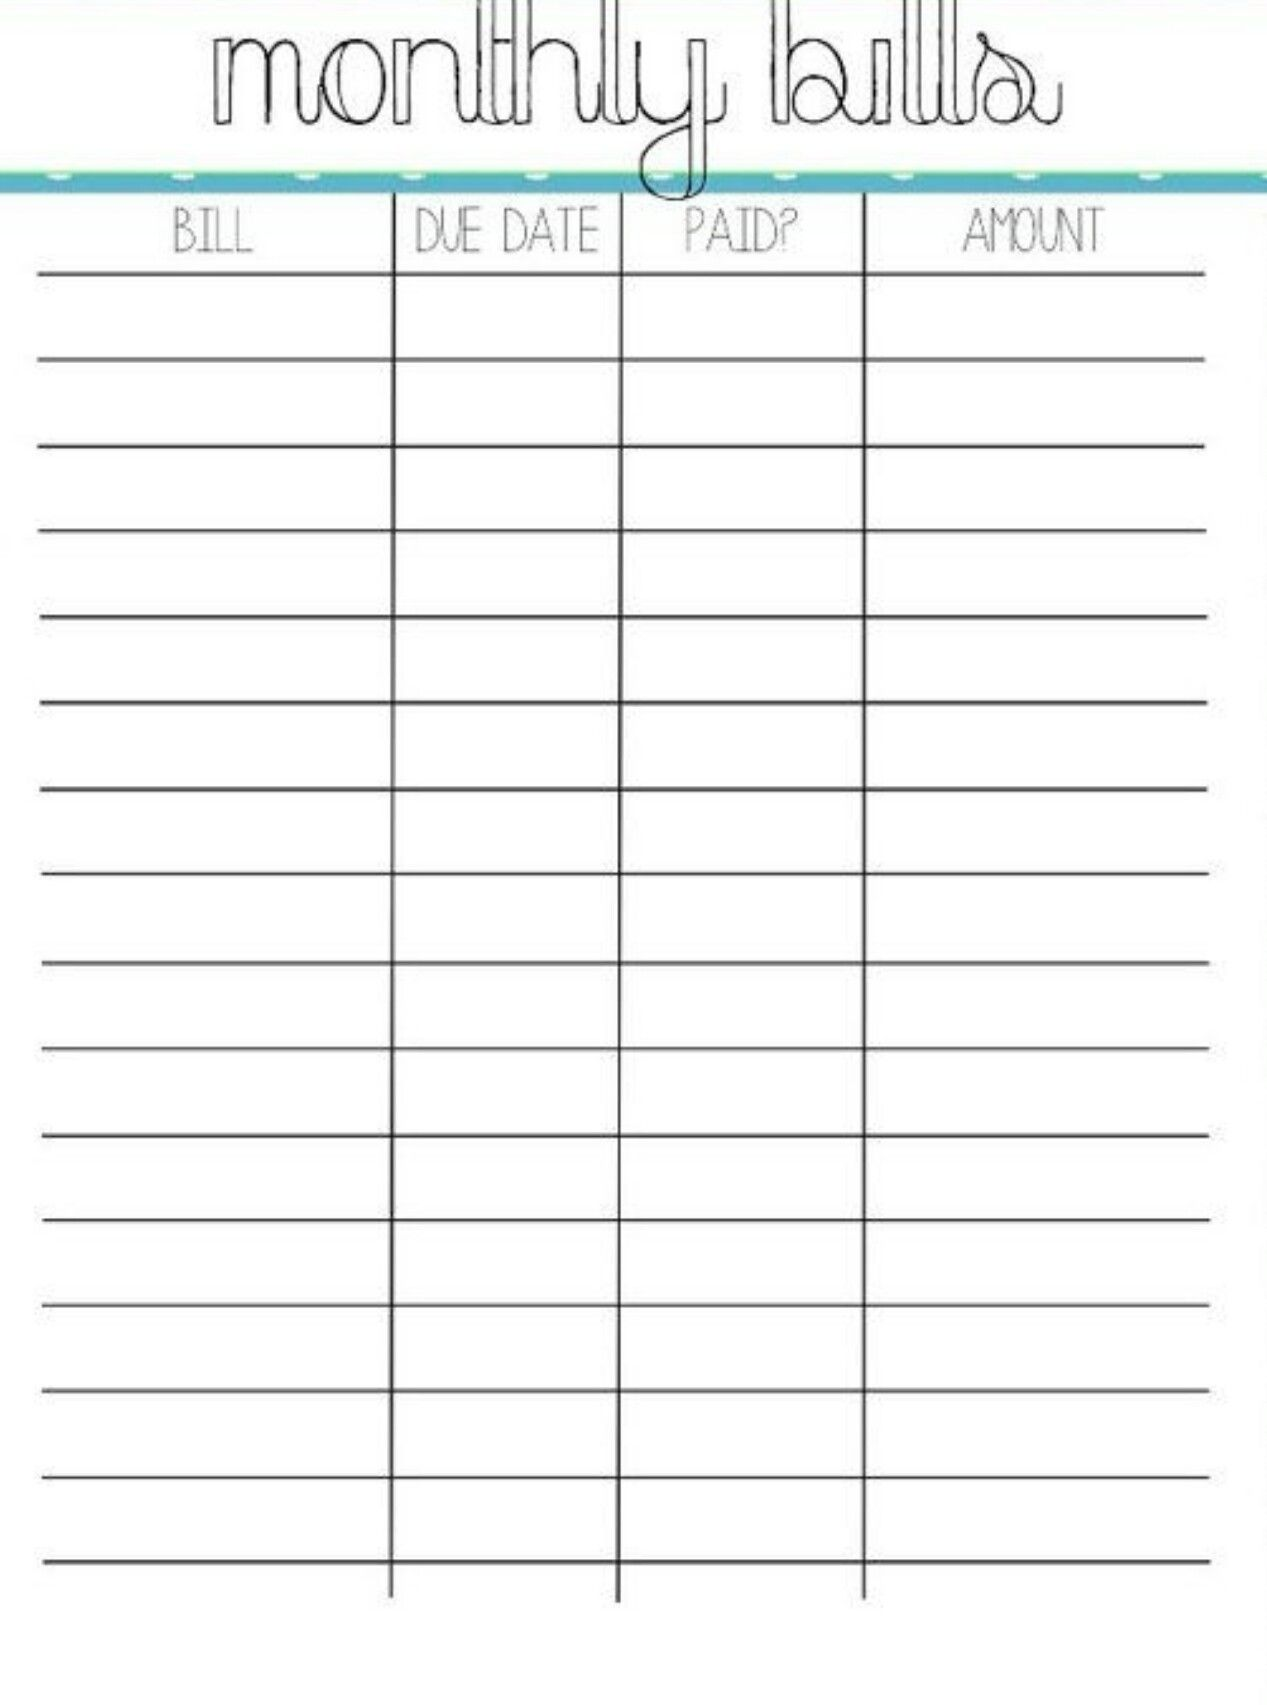 photo regarding Monthly Bill Organizer Printable titled Pin by means of Crystal upon charges Planning regular charges, Invoice